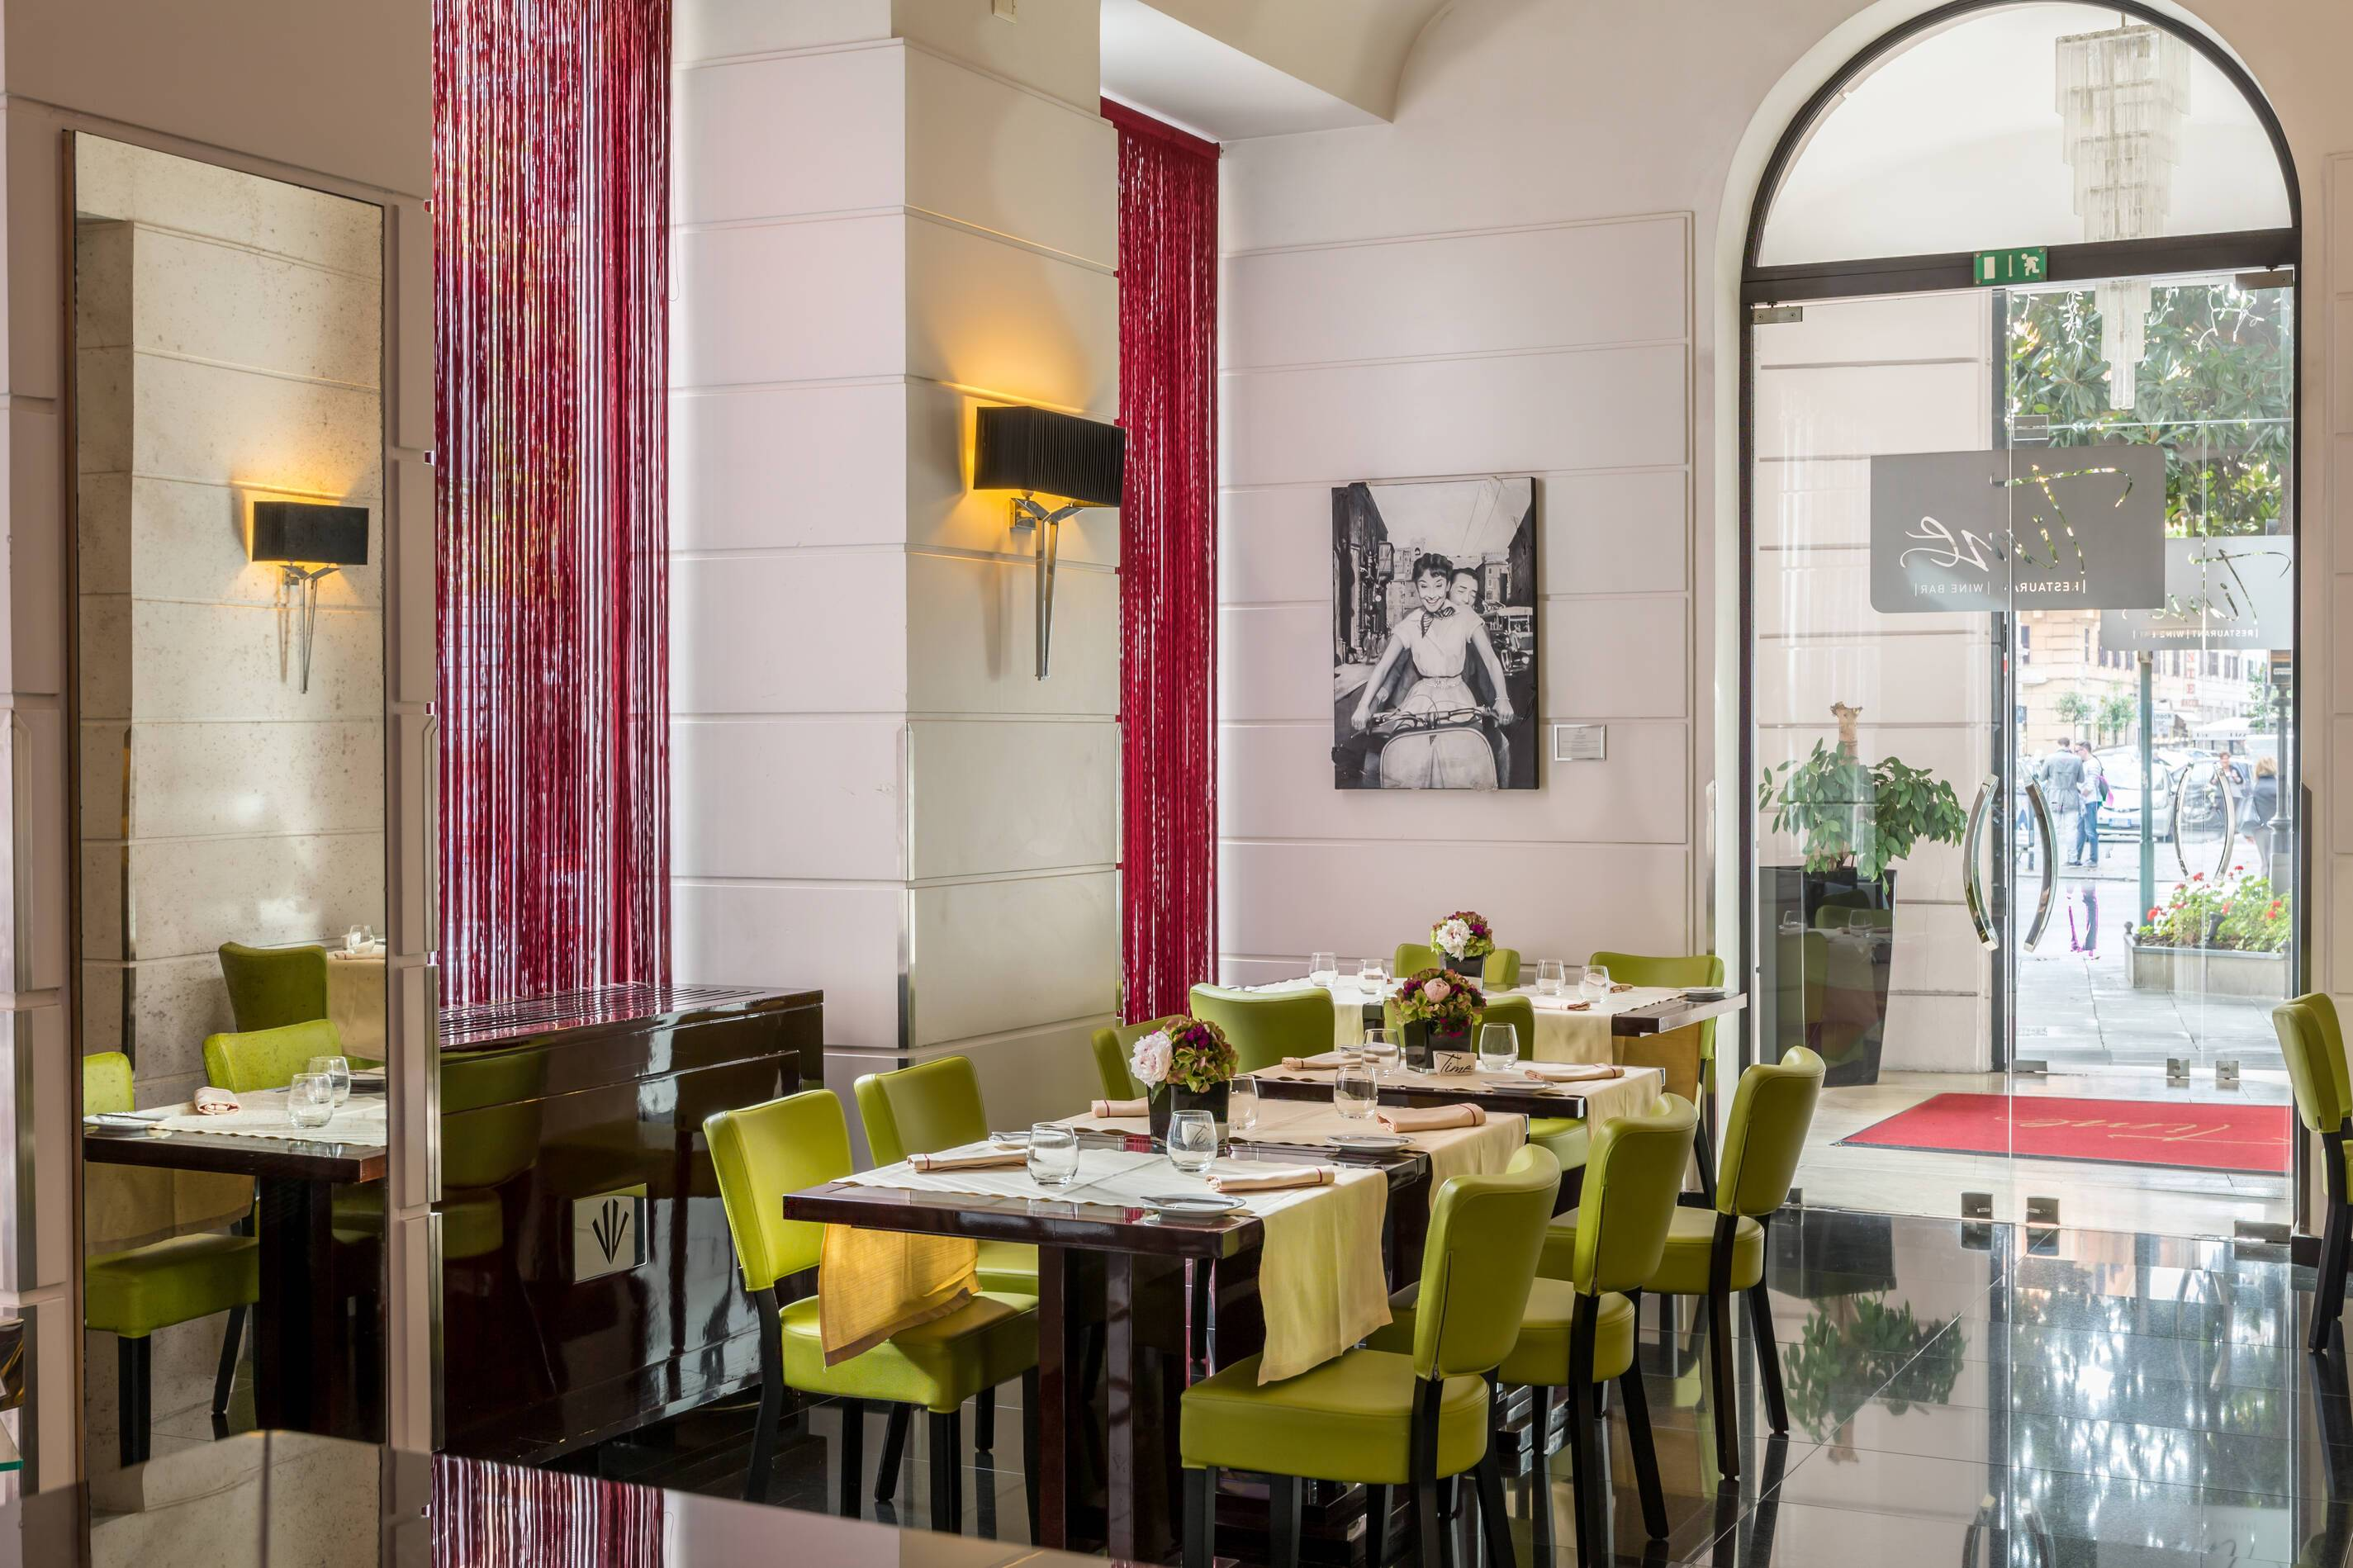 Grand Hotel Via Veneto Rome Italie Restaurant Time